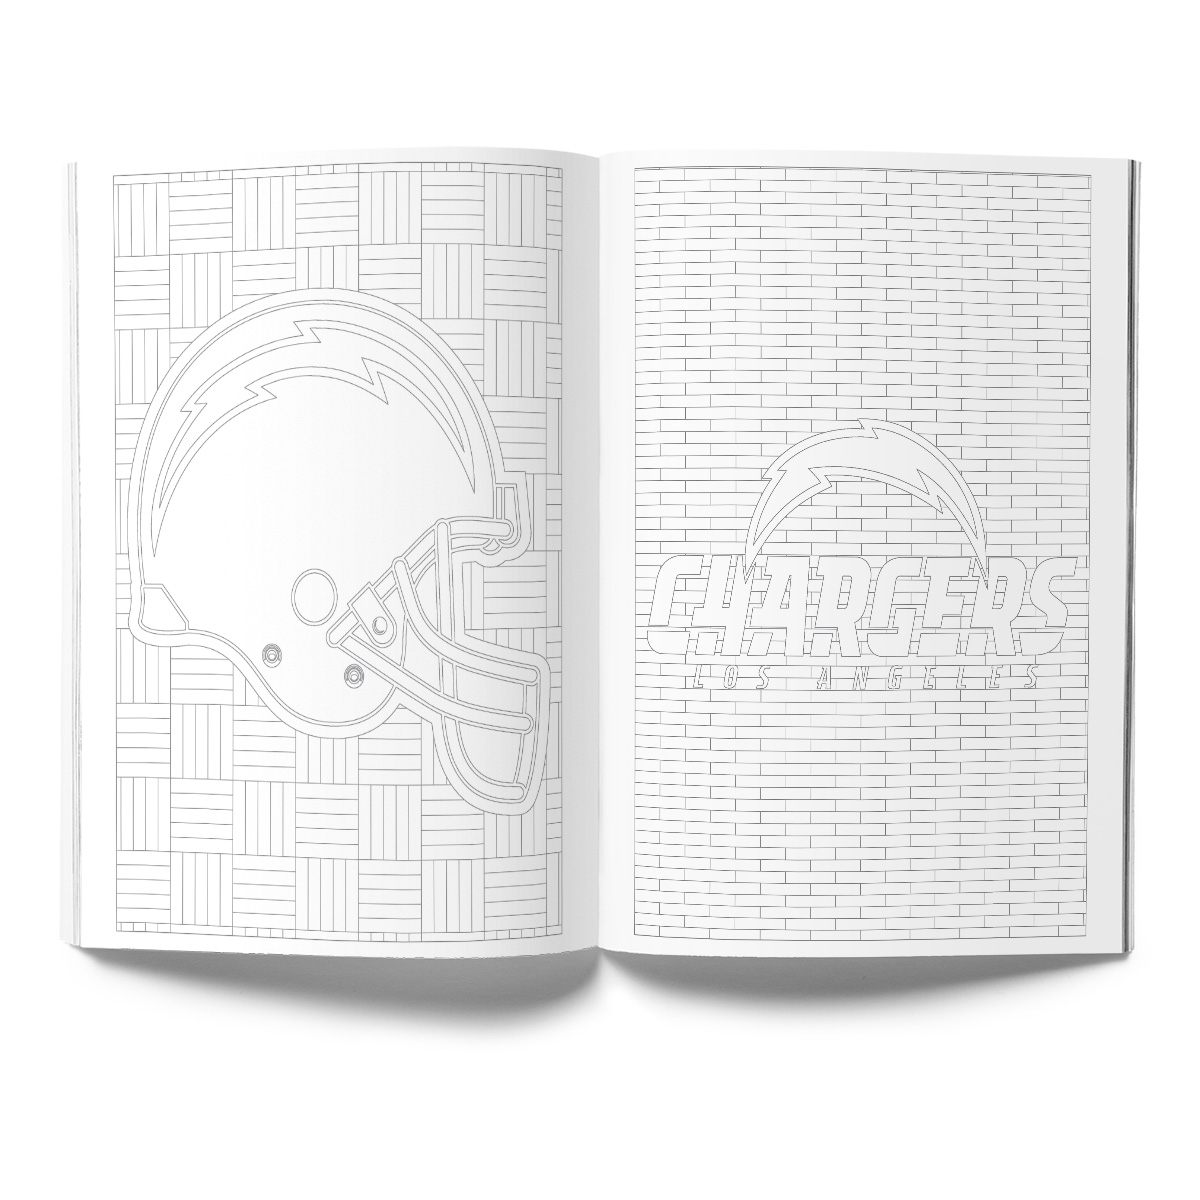 Los Angeles Chargers Adult Coloring Book